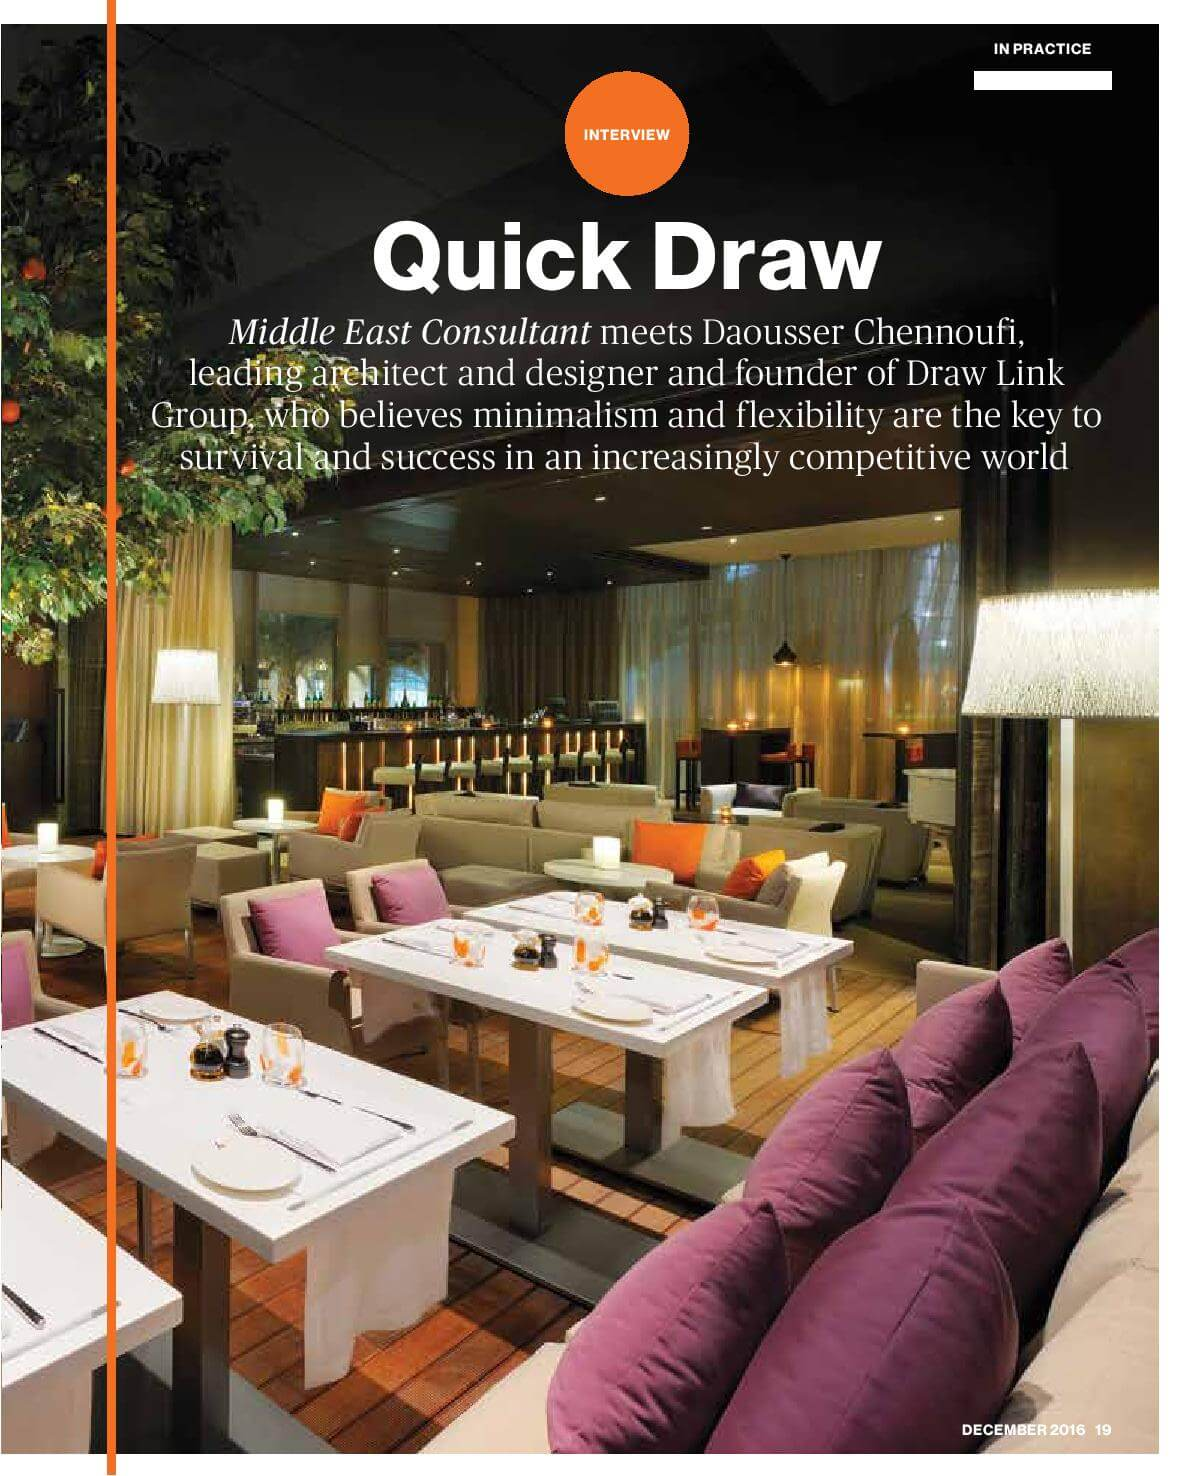 Draw Link Group - Middle East Consultant - December 2016 - Page 19